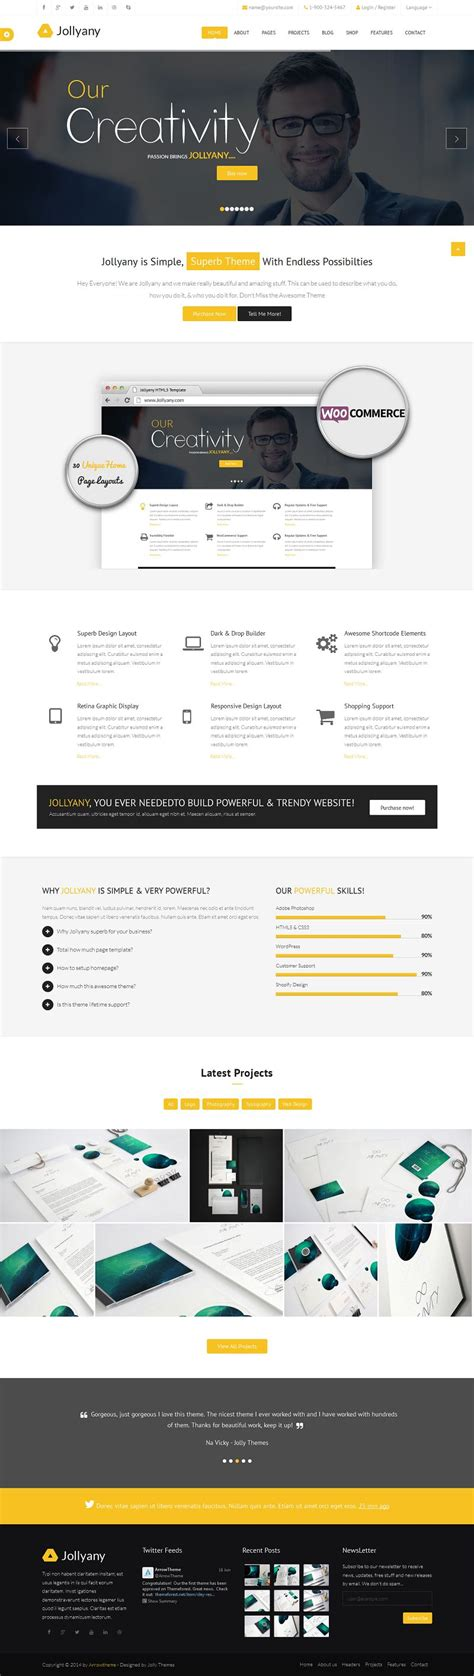 drupal theme omega demo jollyany responsive multi purpose drupal corporate theme